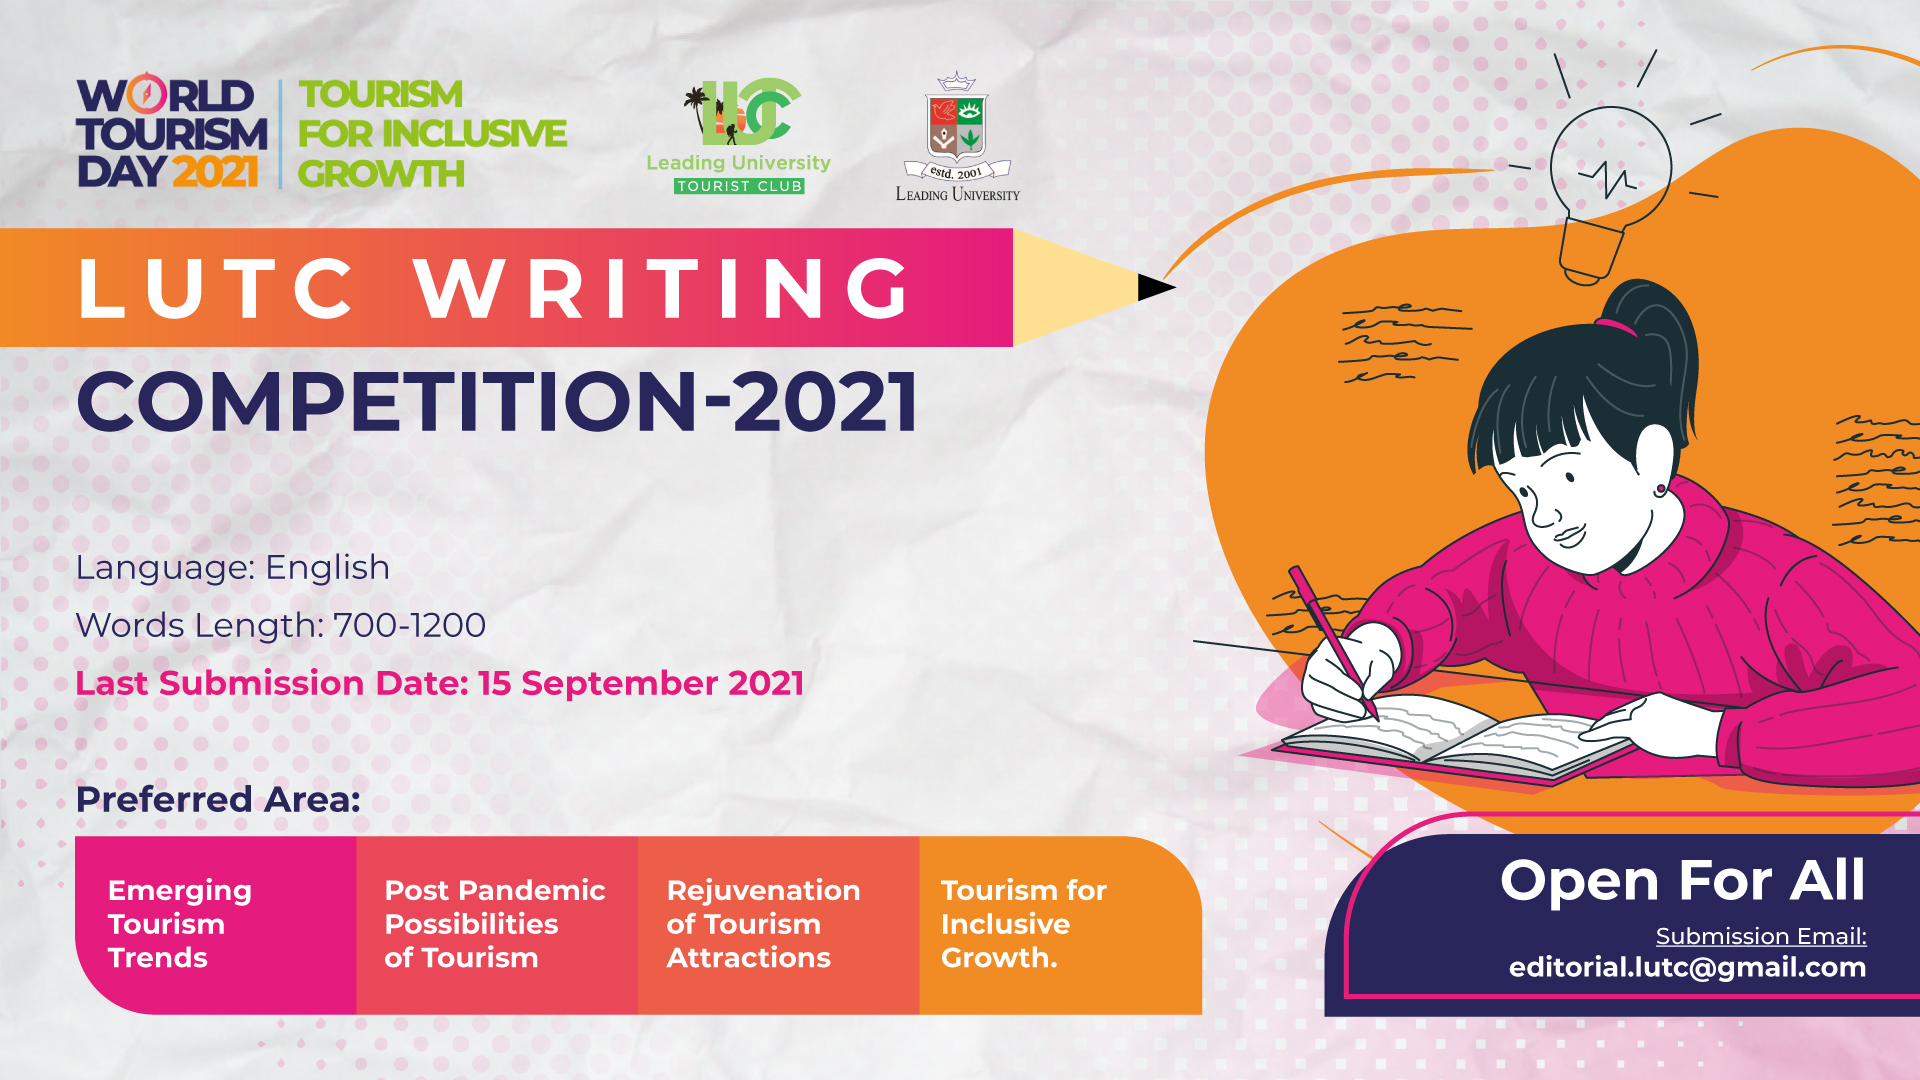 LUTC Writing Competition 2021